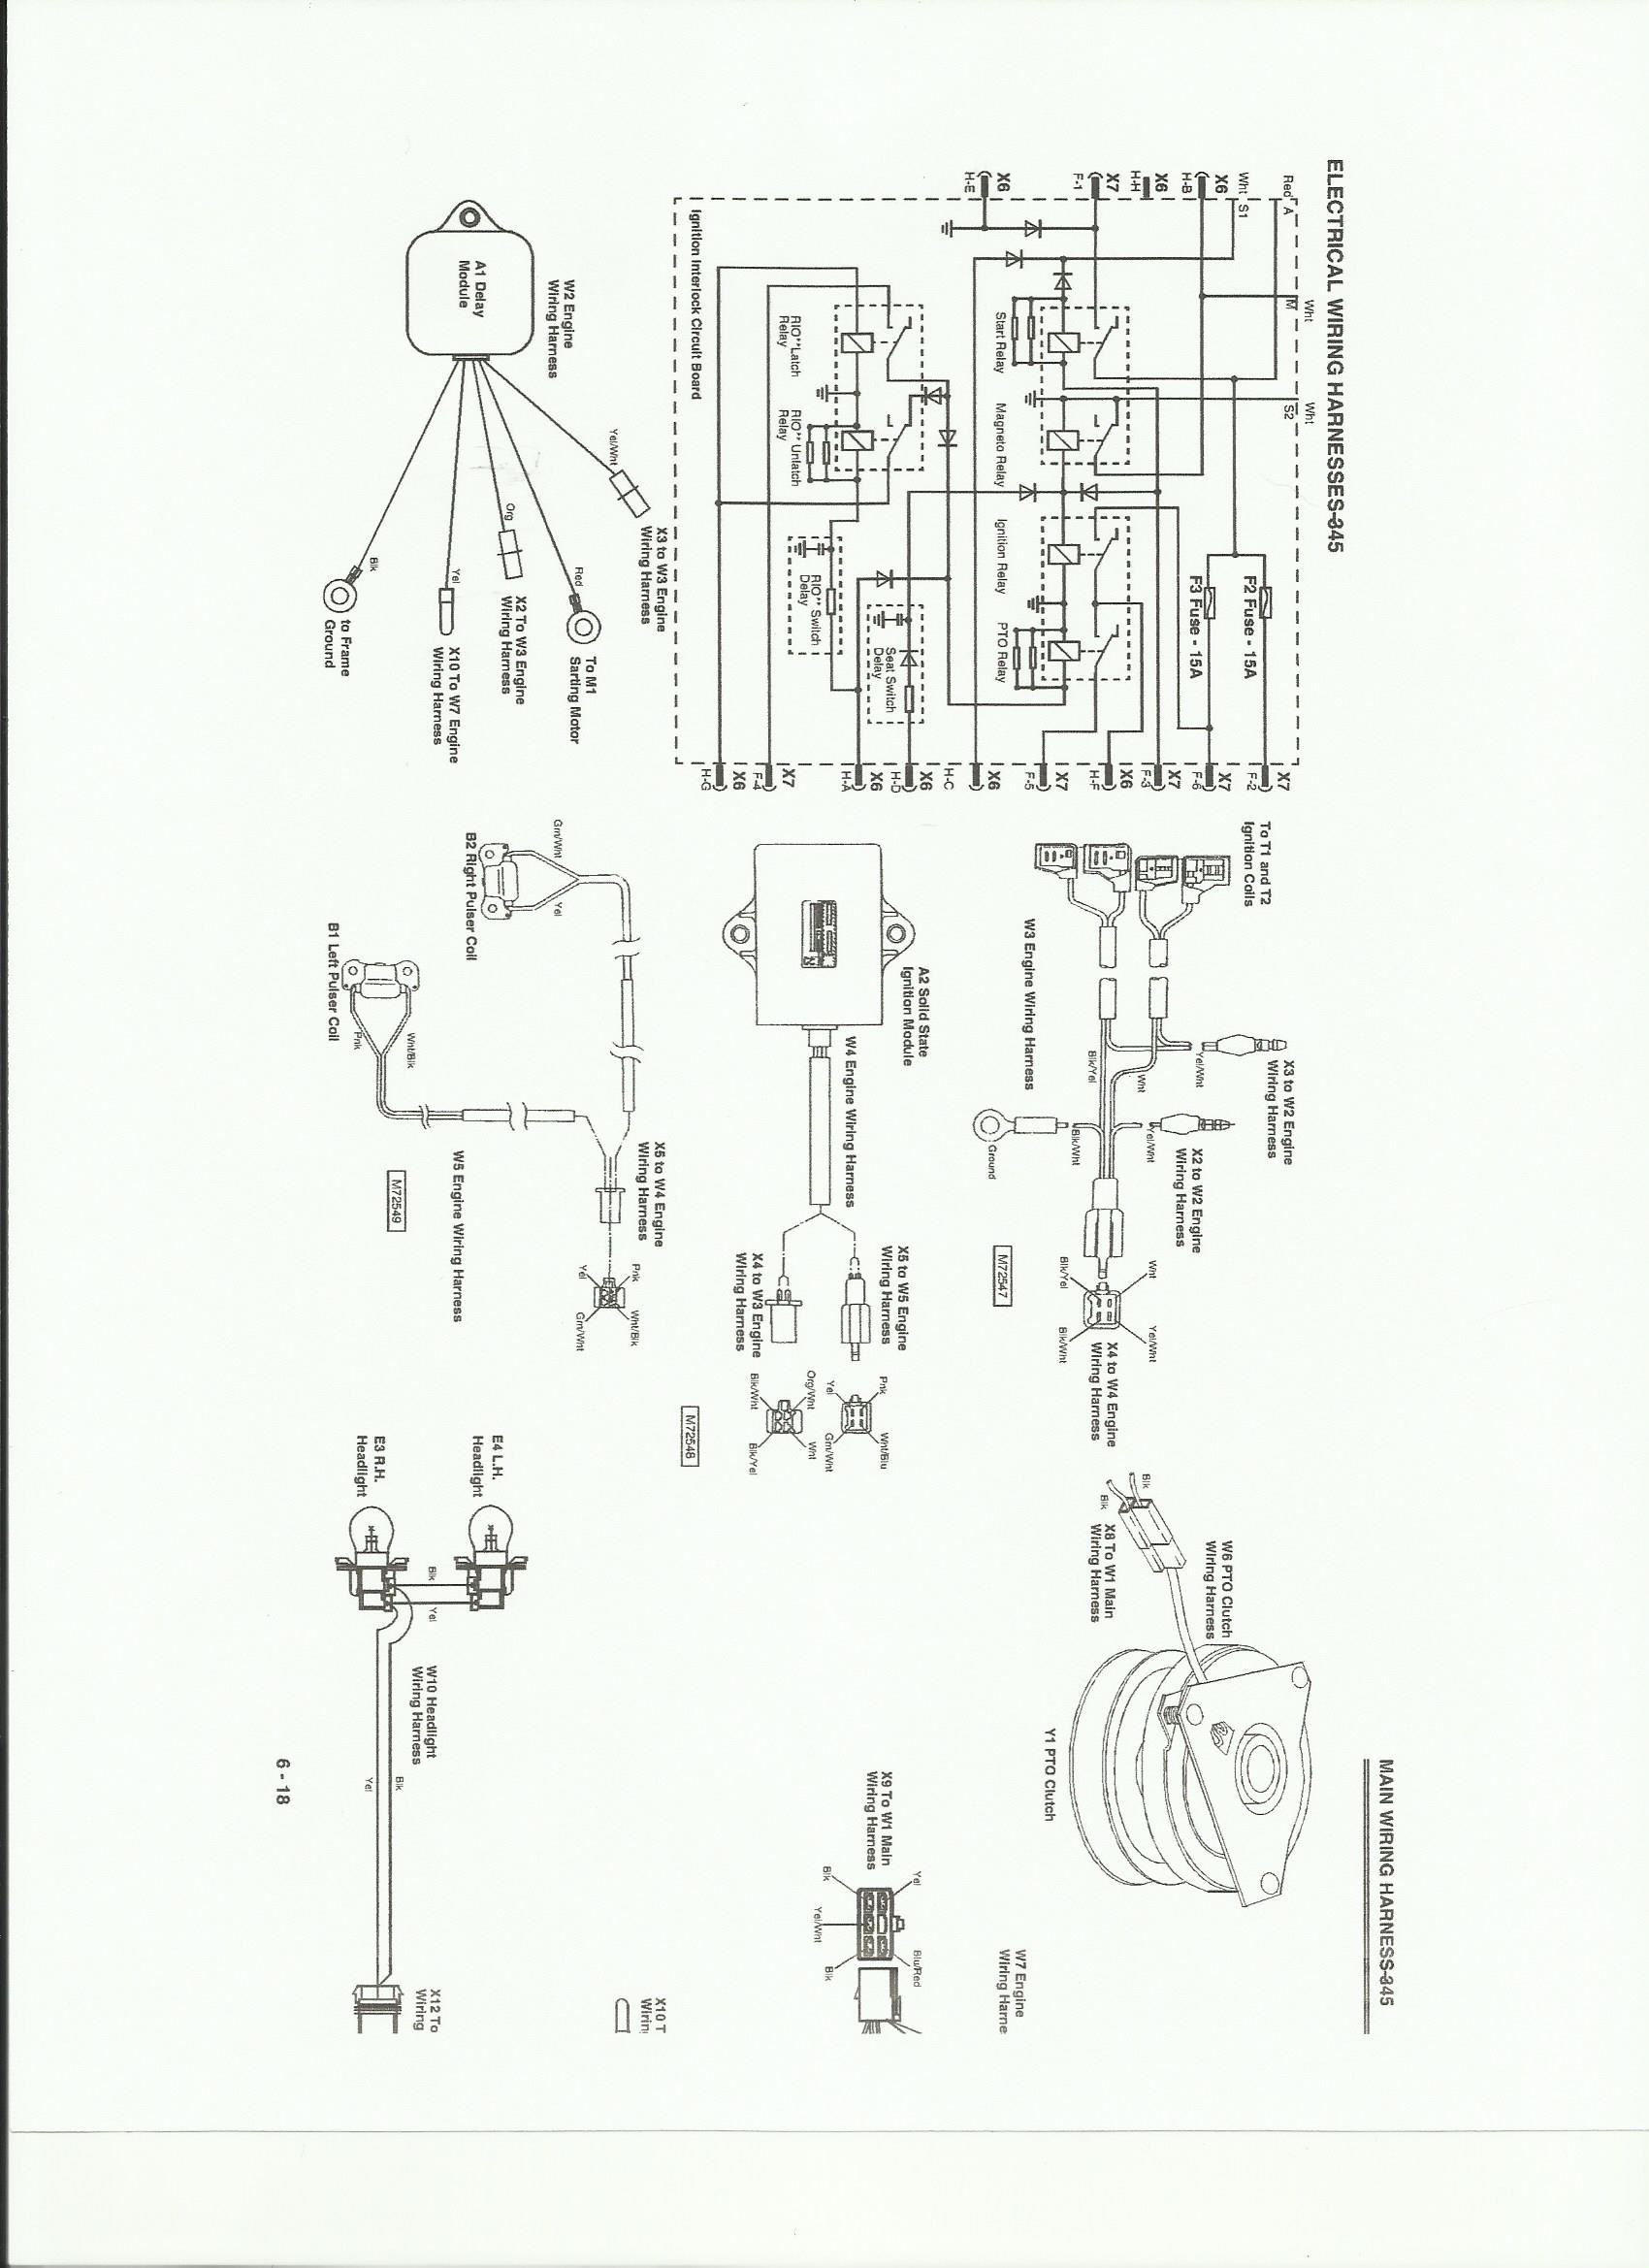 Jd 345 Lawn Tractor Wiring Need A 345 Wiring Diagram .pdf Please My Tractor forum Of Jd 345 Lawn Tractor Wiring